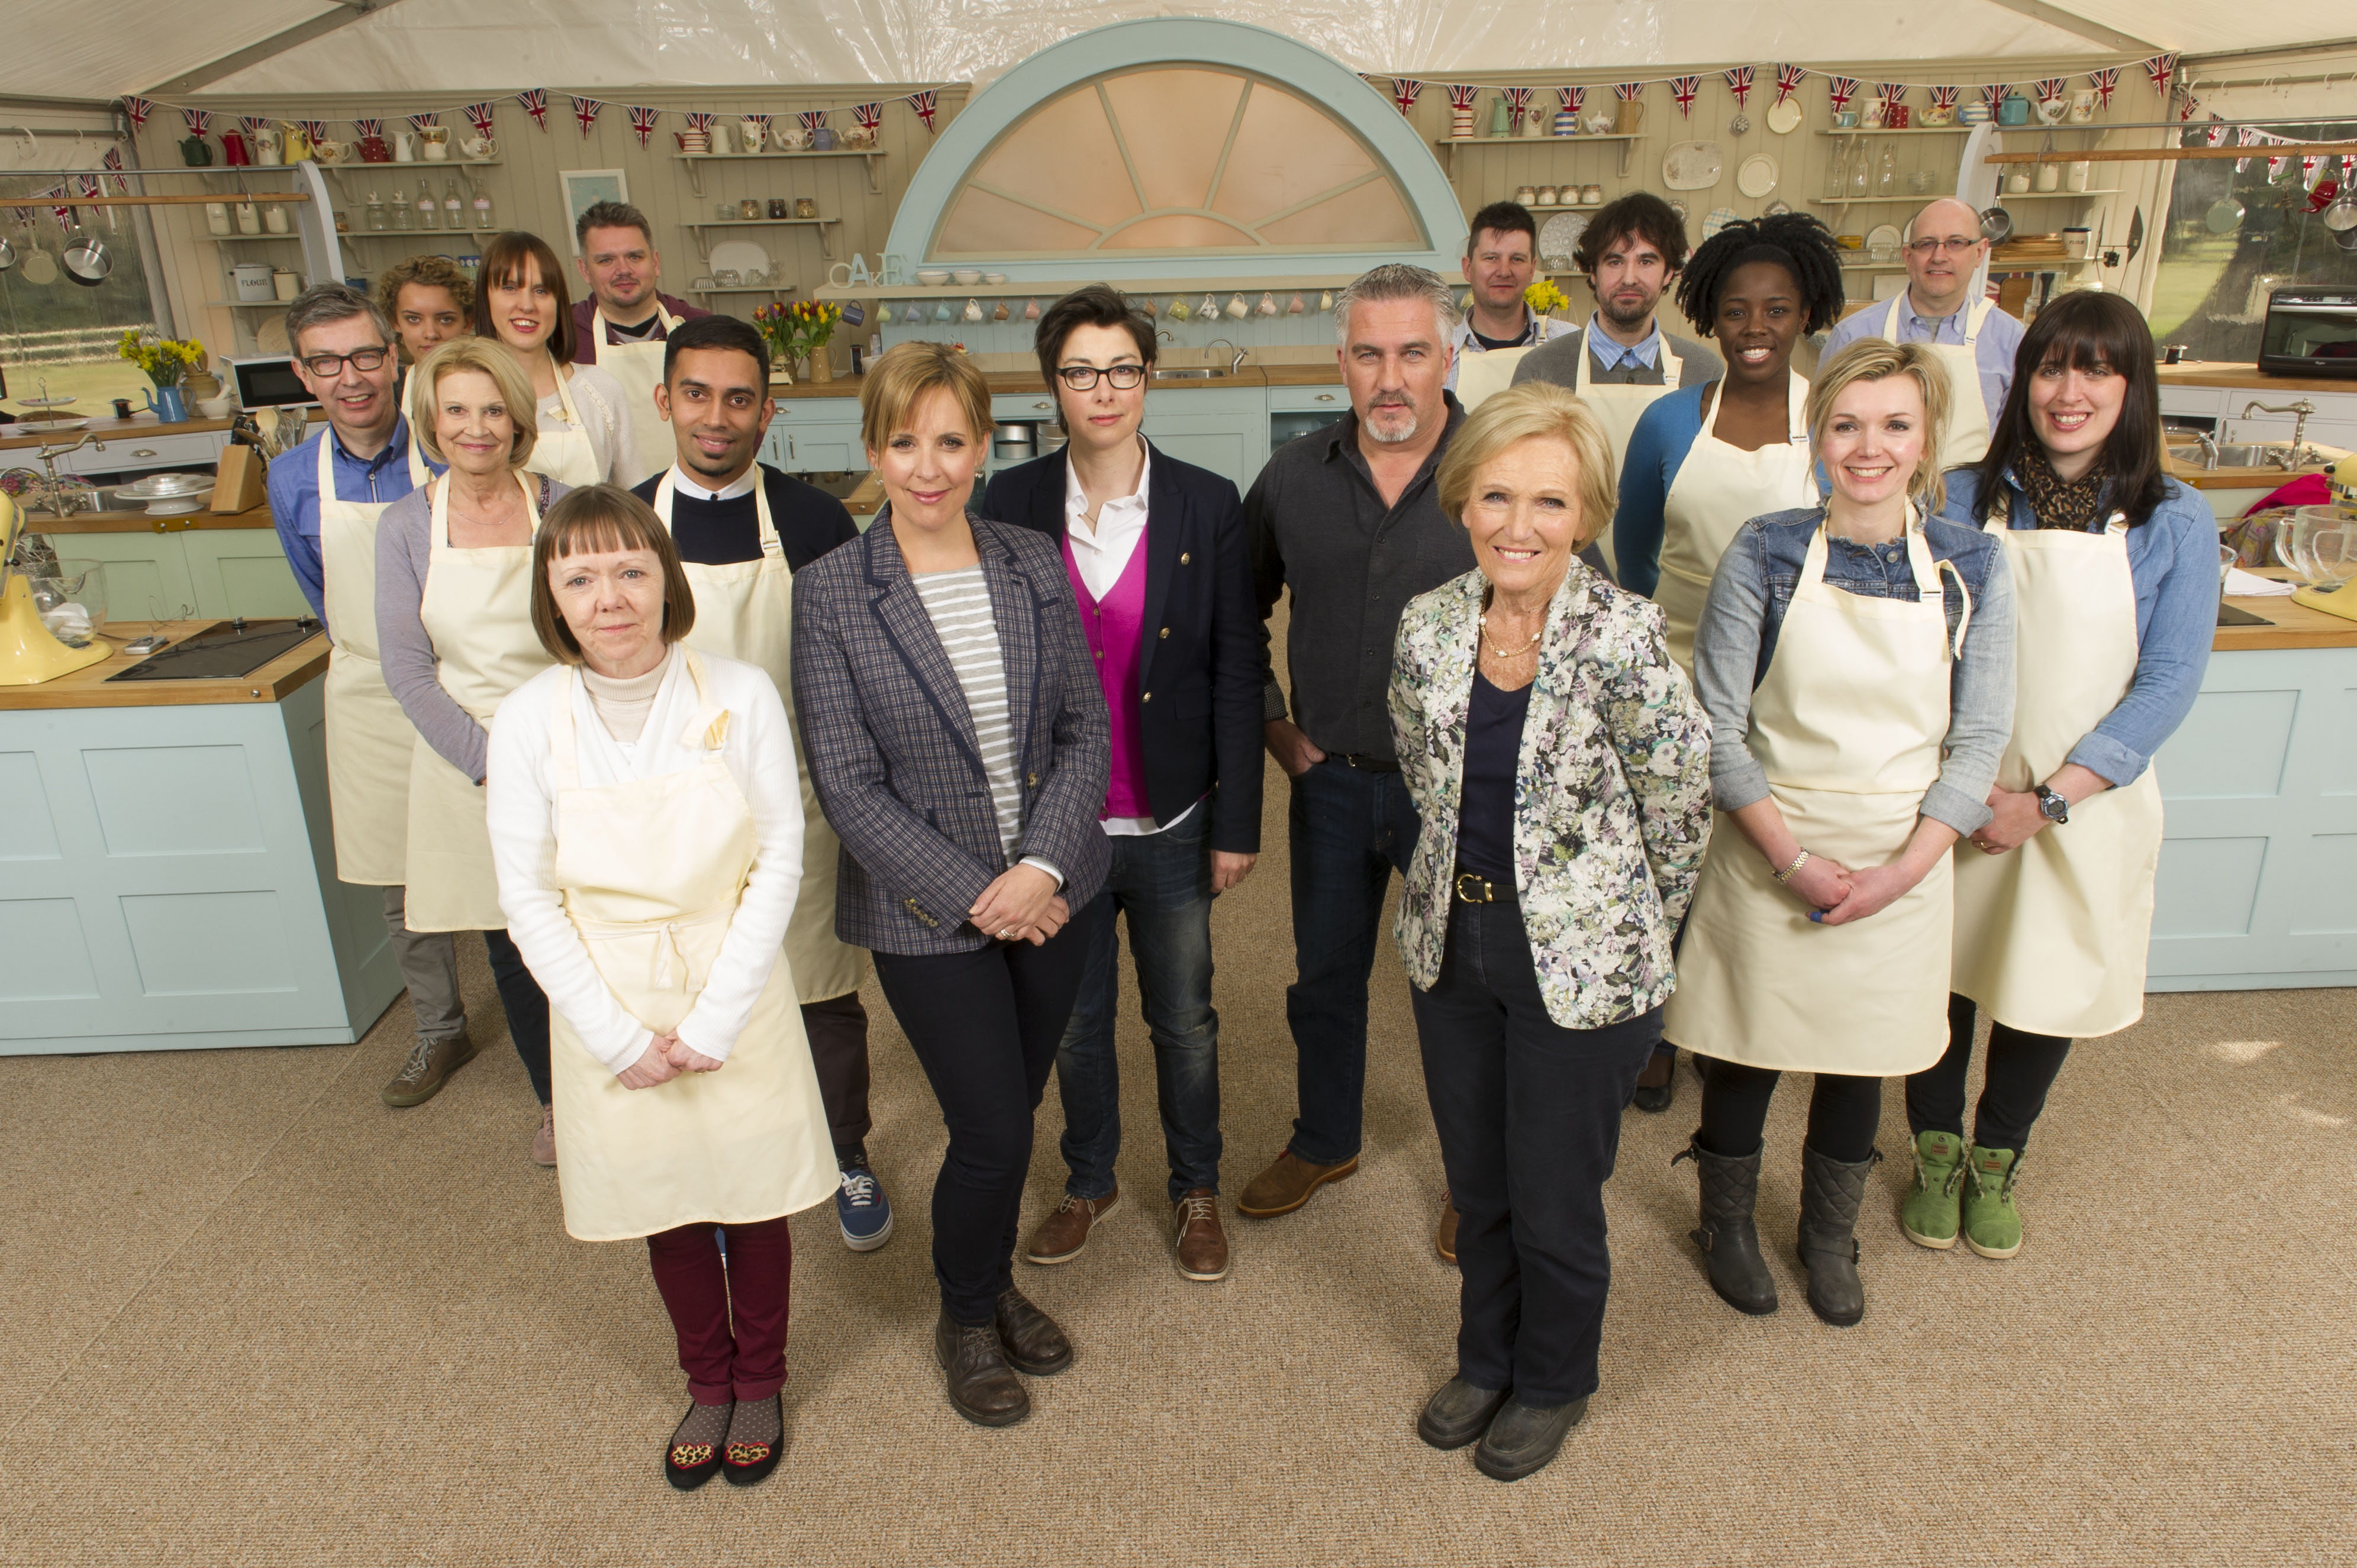 'The Great British Baking Show' Returns to PBS This Fall ...